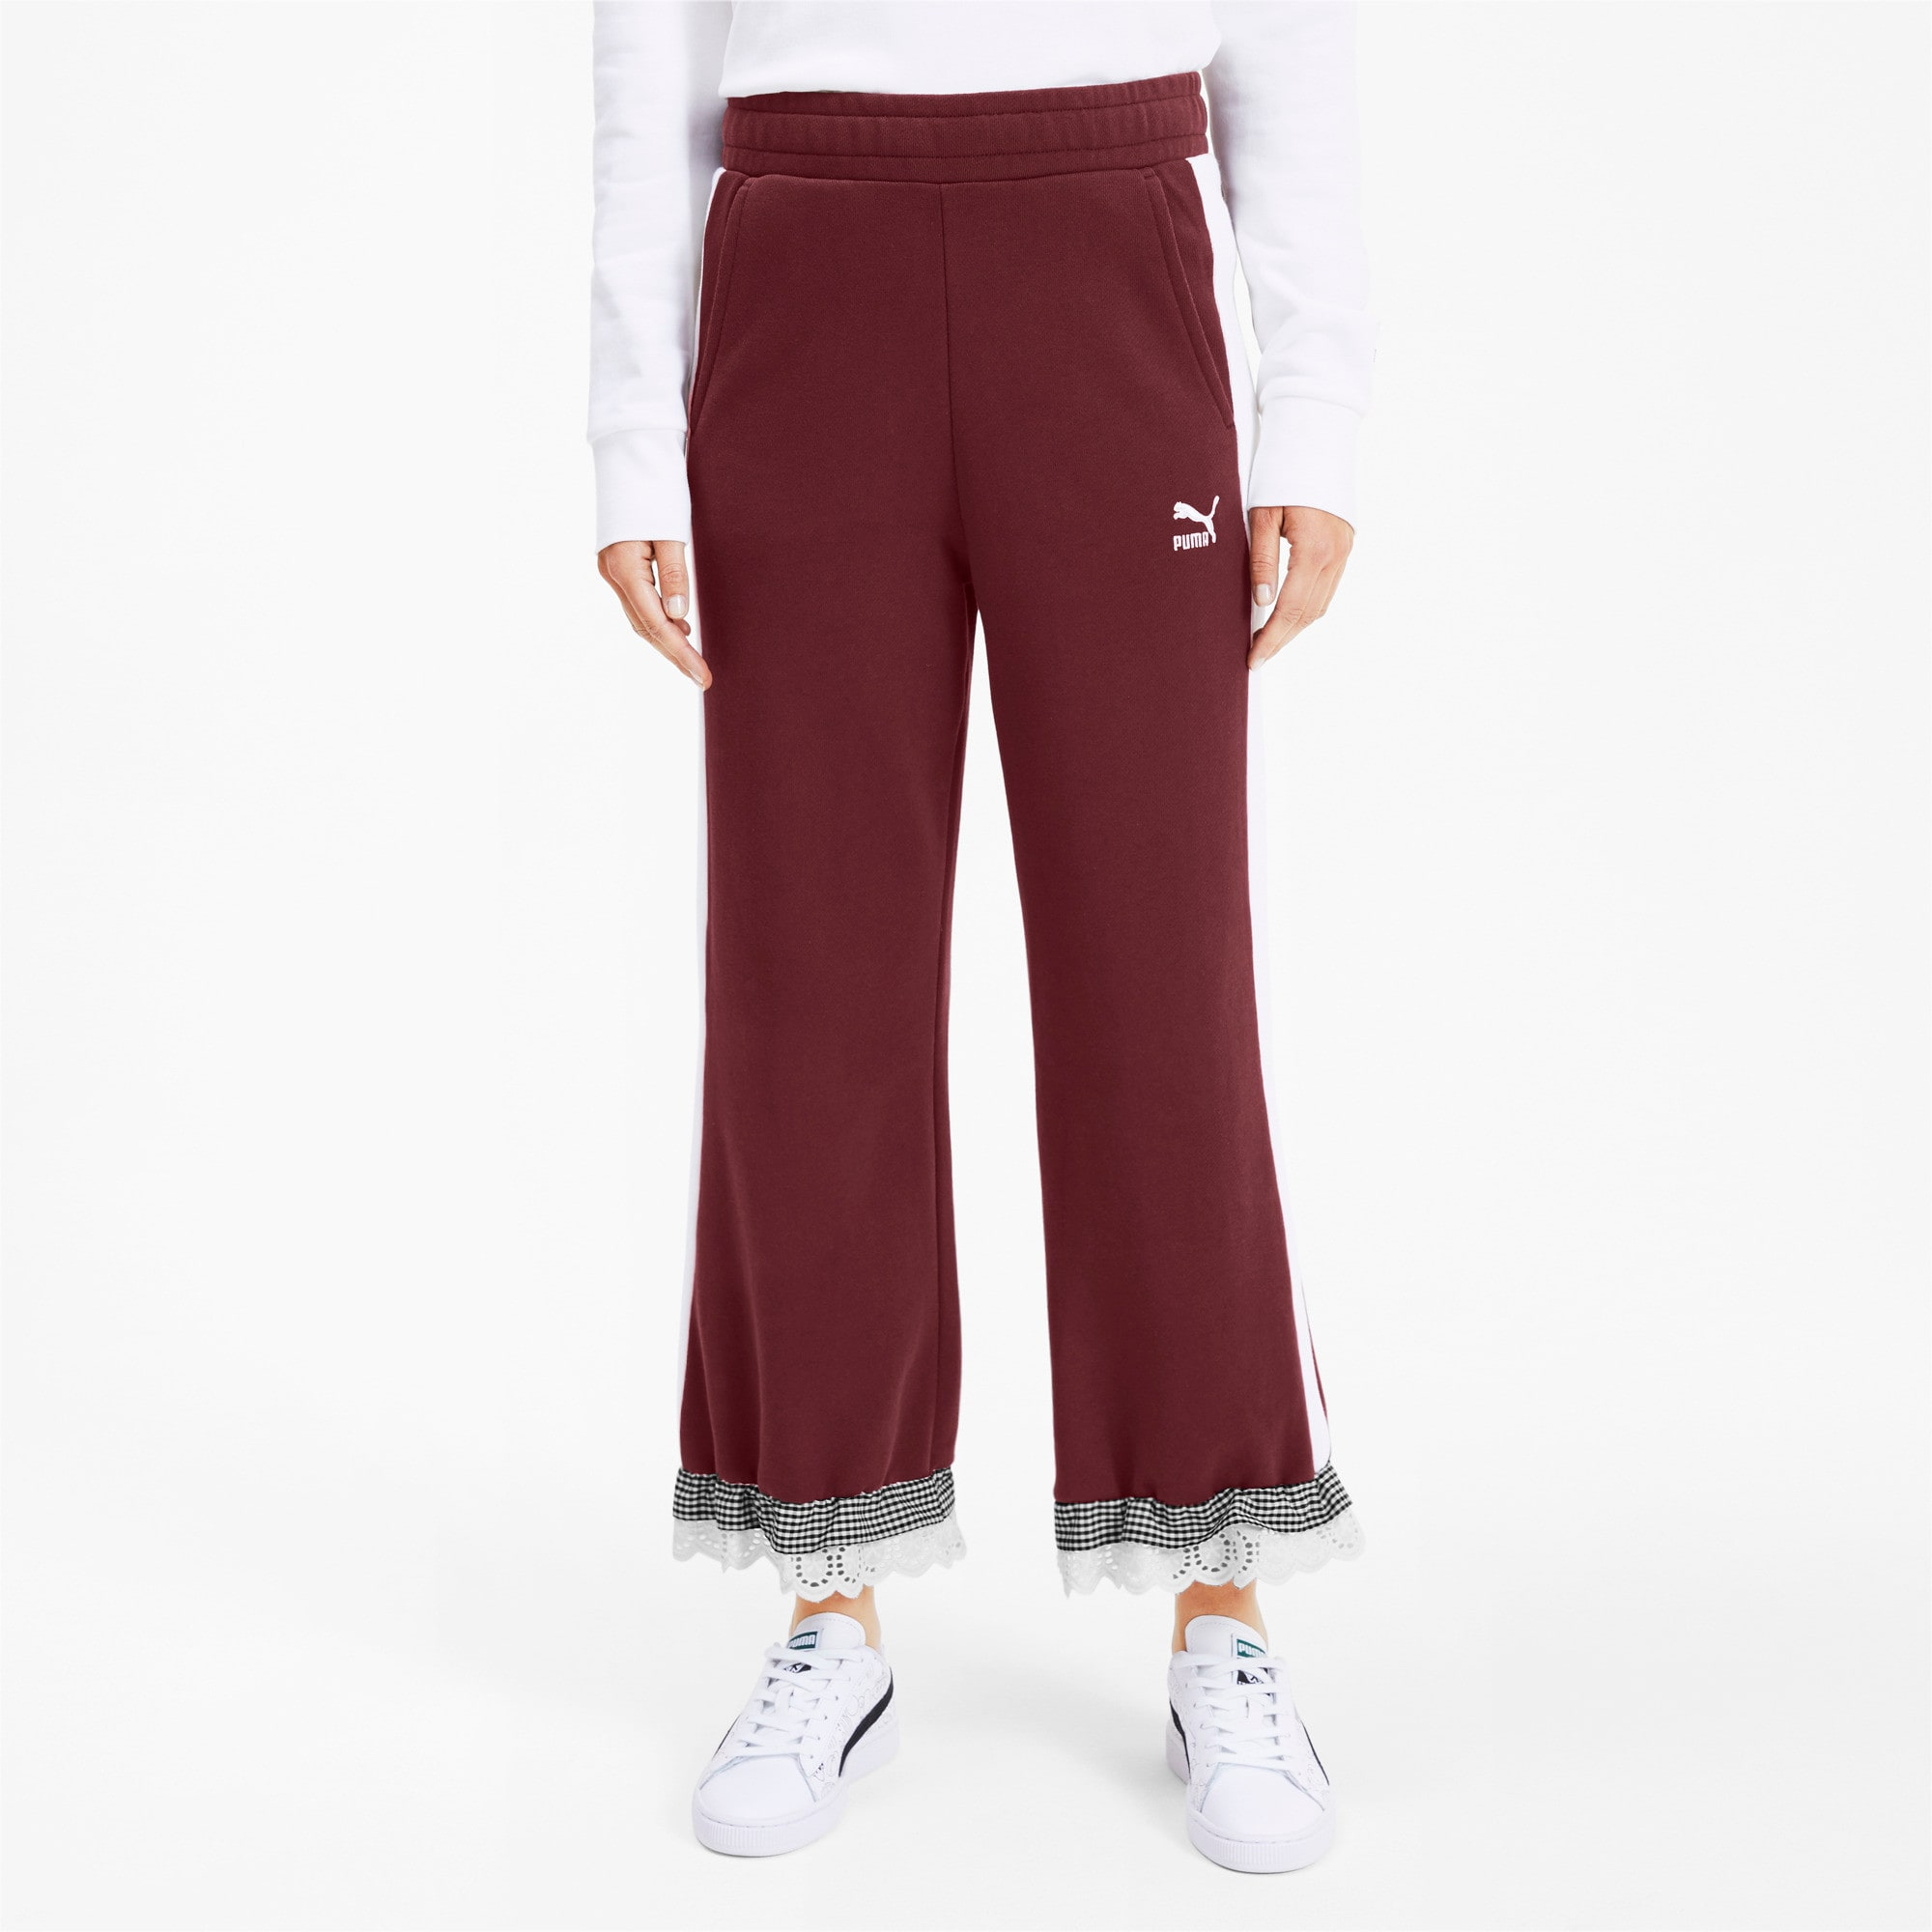 Thumbnail 2 of PUMA x TYAKASHA Women's Culottes, Vineyard Wine, medium